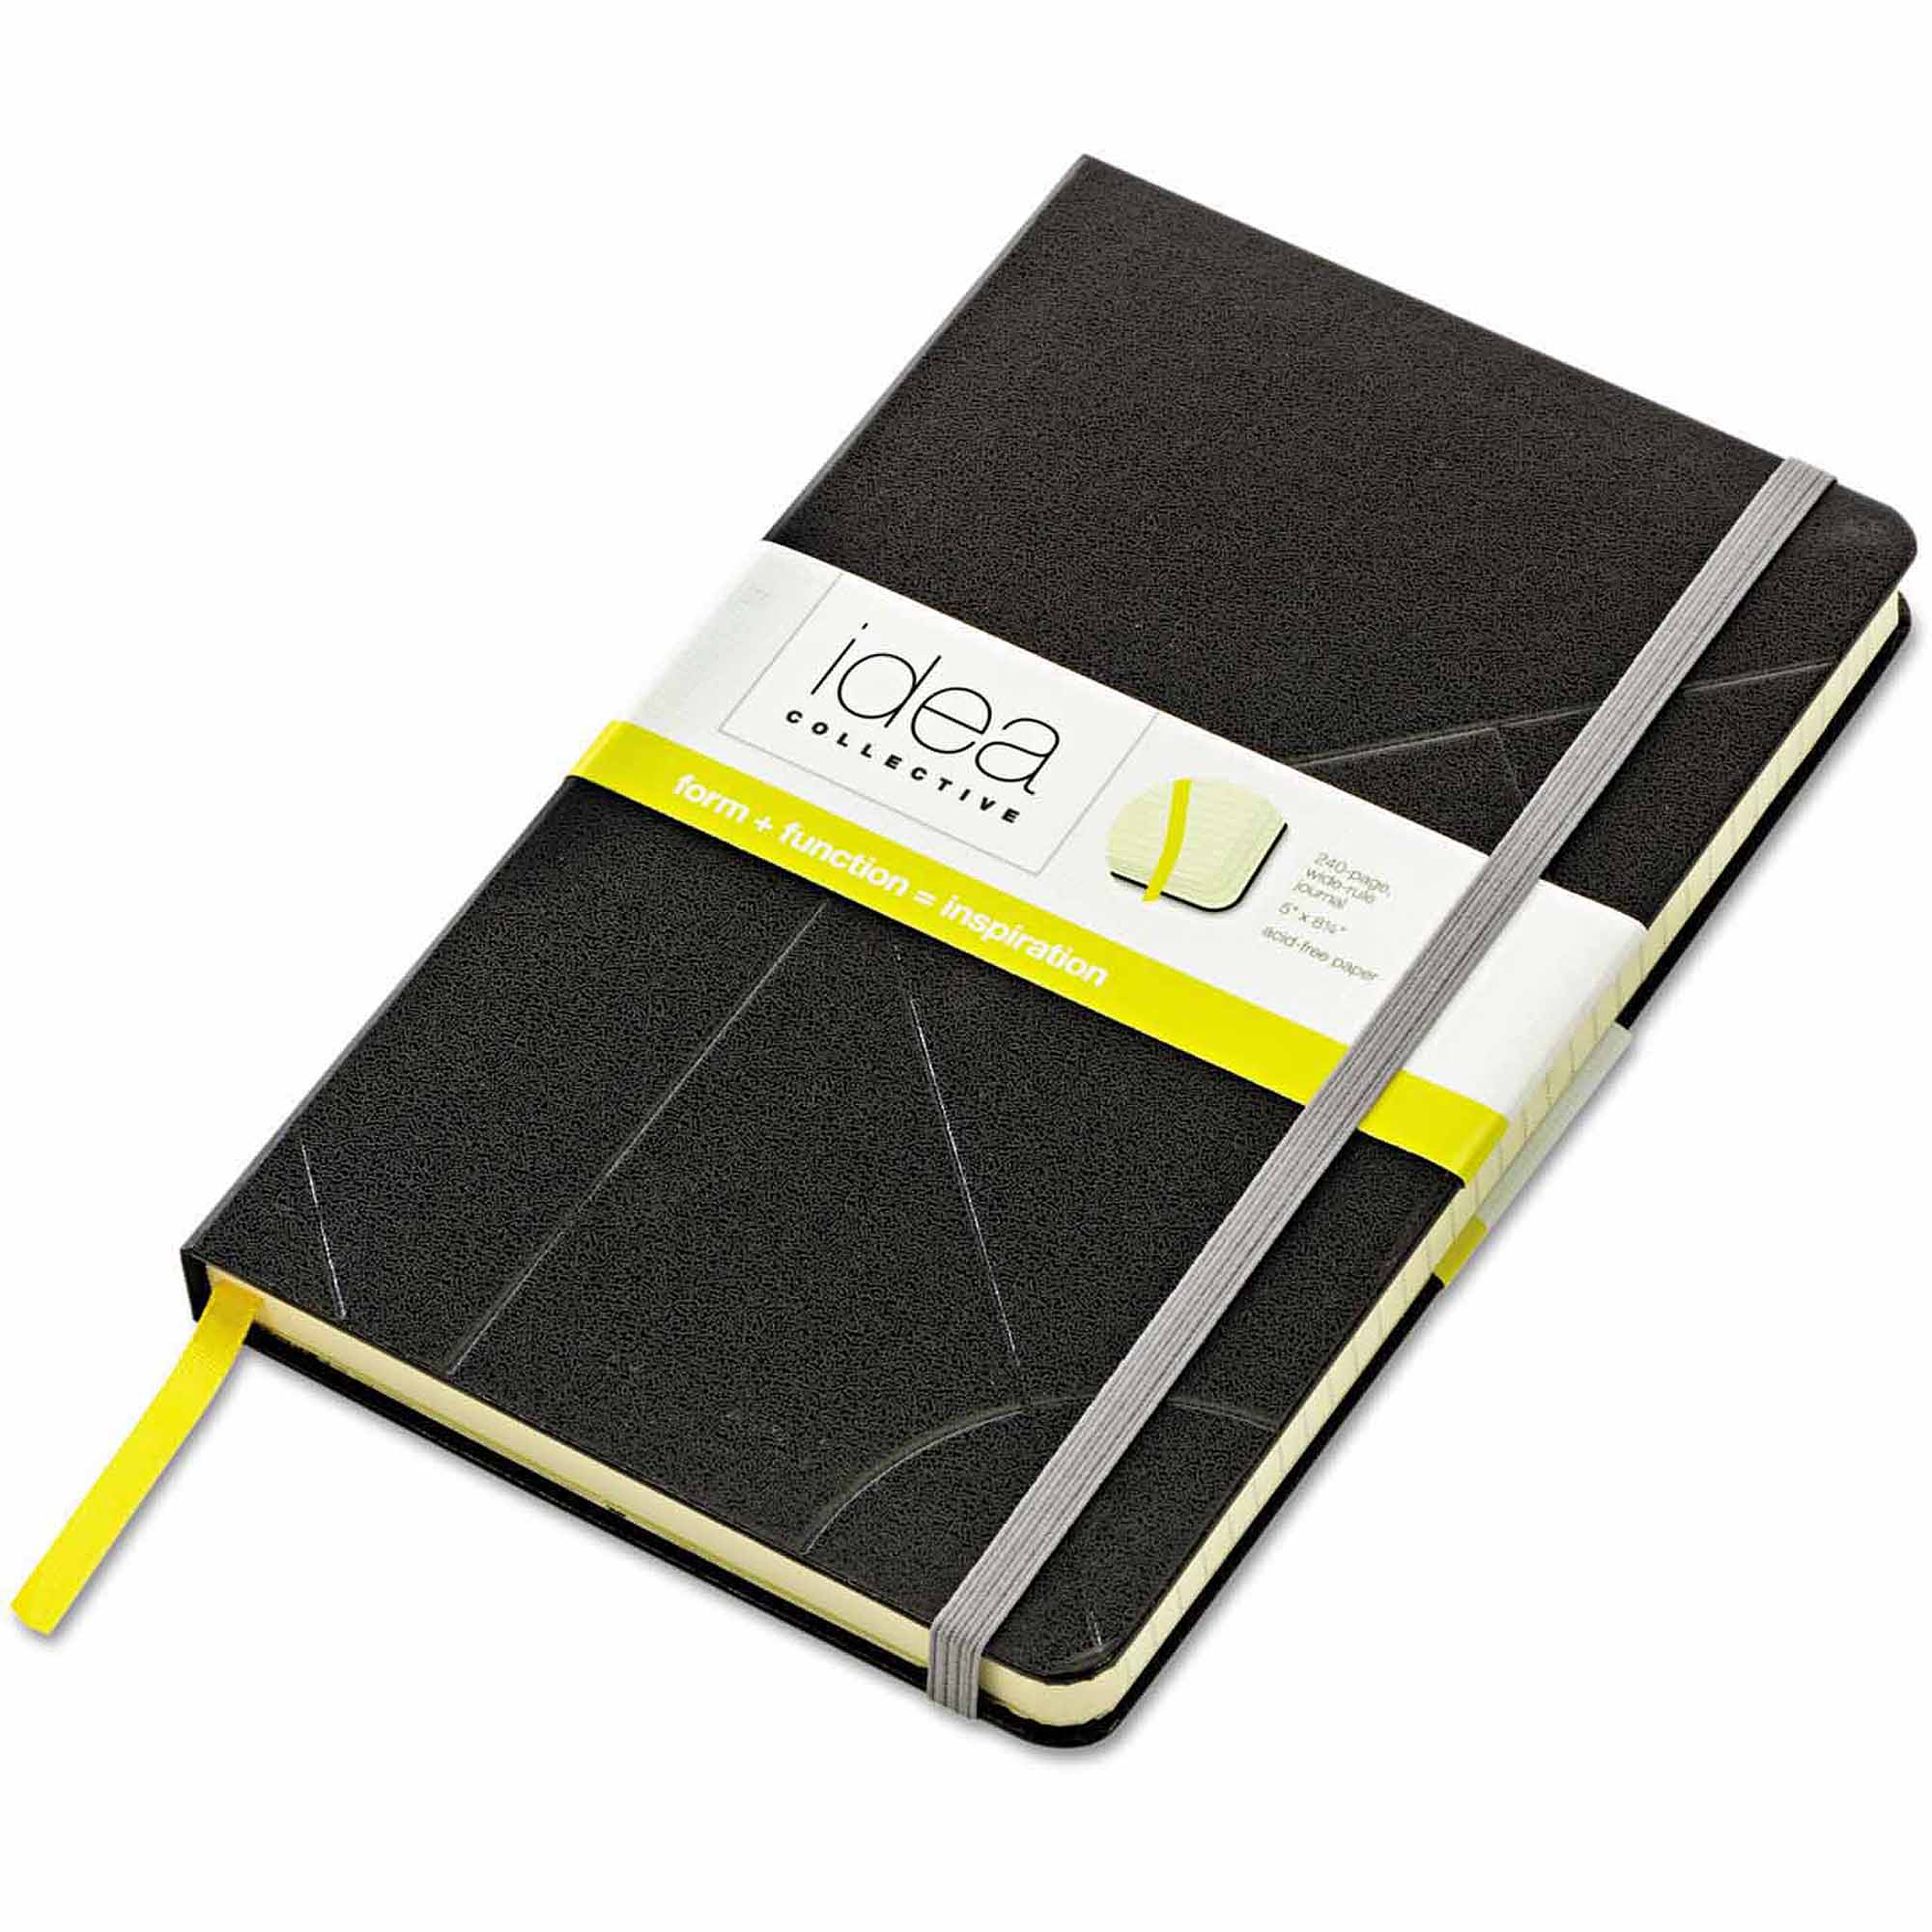 "TOPS Idea Collective Journal, Hard Cover, Side Binding, 8-1/4"" x 5"", Black"